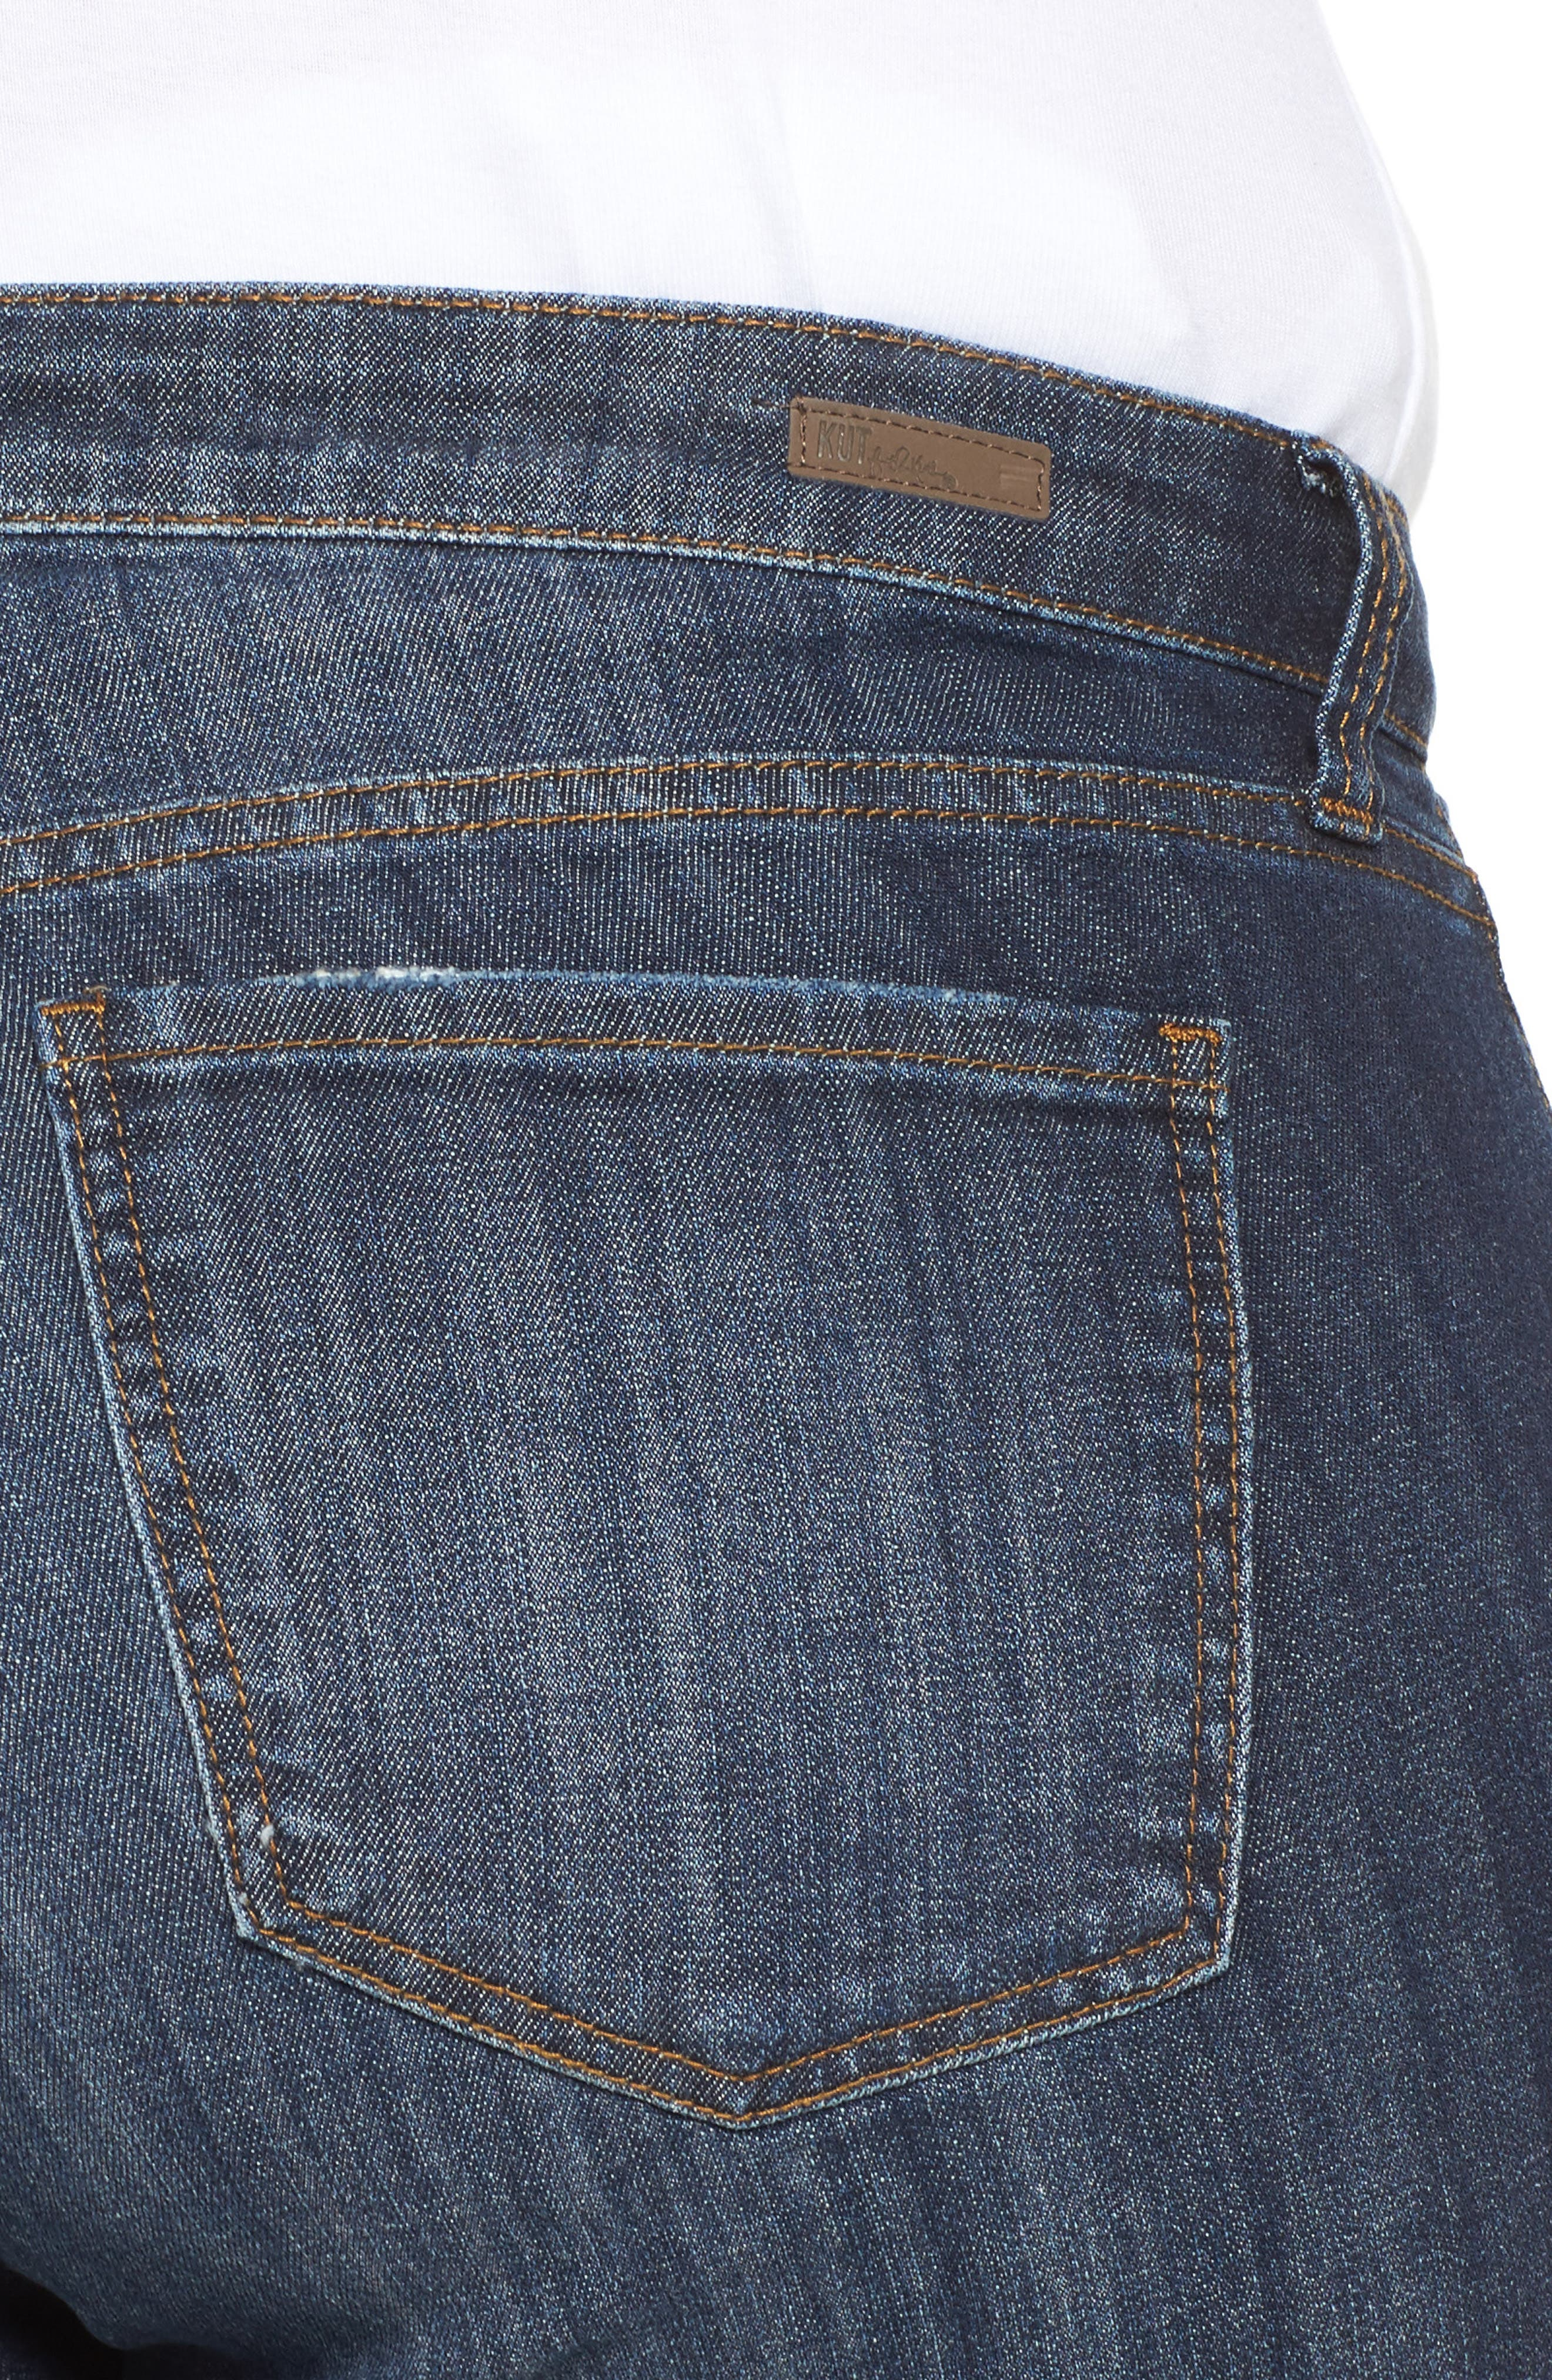 KUT FROM THE KLOTH, Catherine Boyfriend Jeans, Alternate thumbnail 5, color, 489